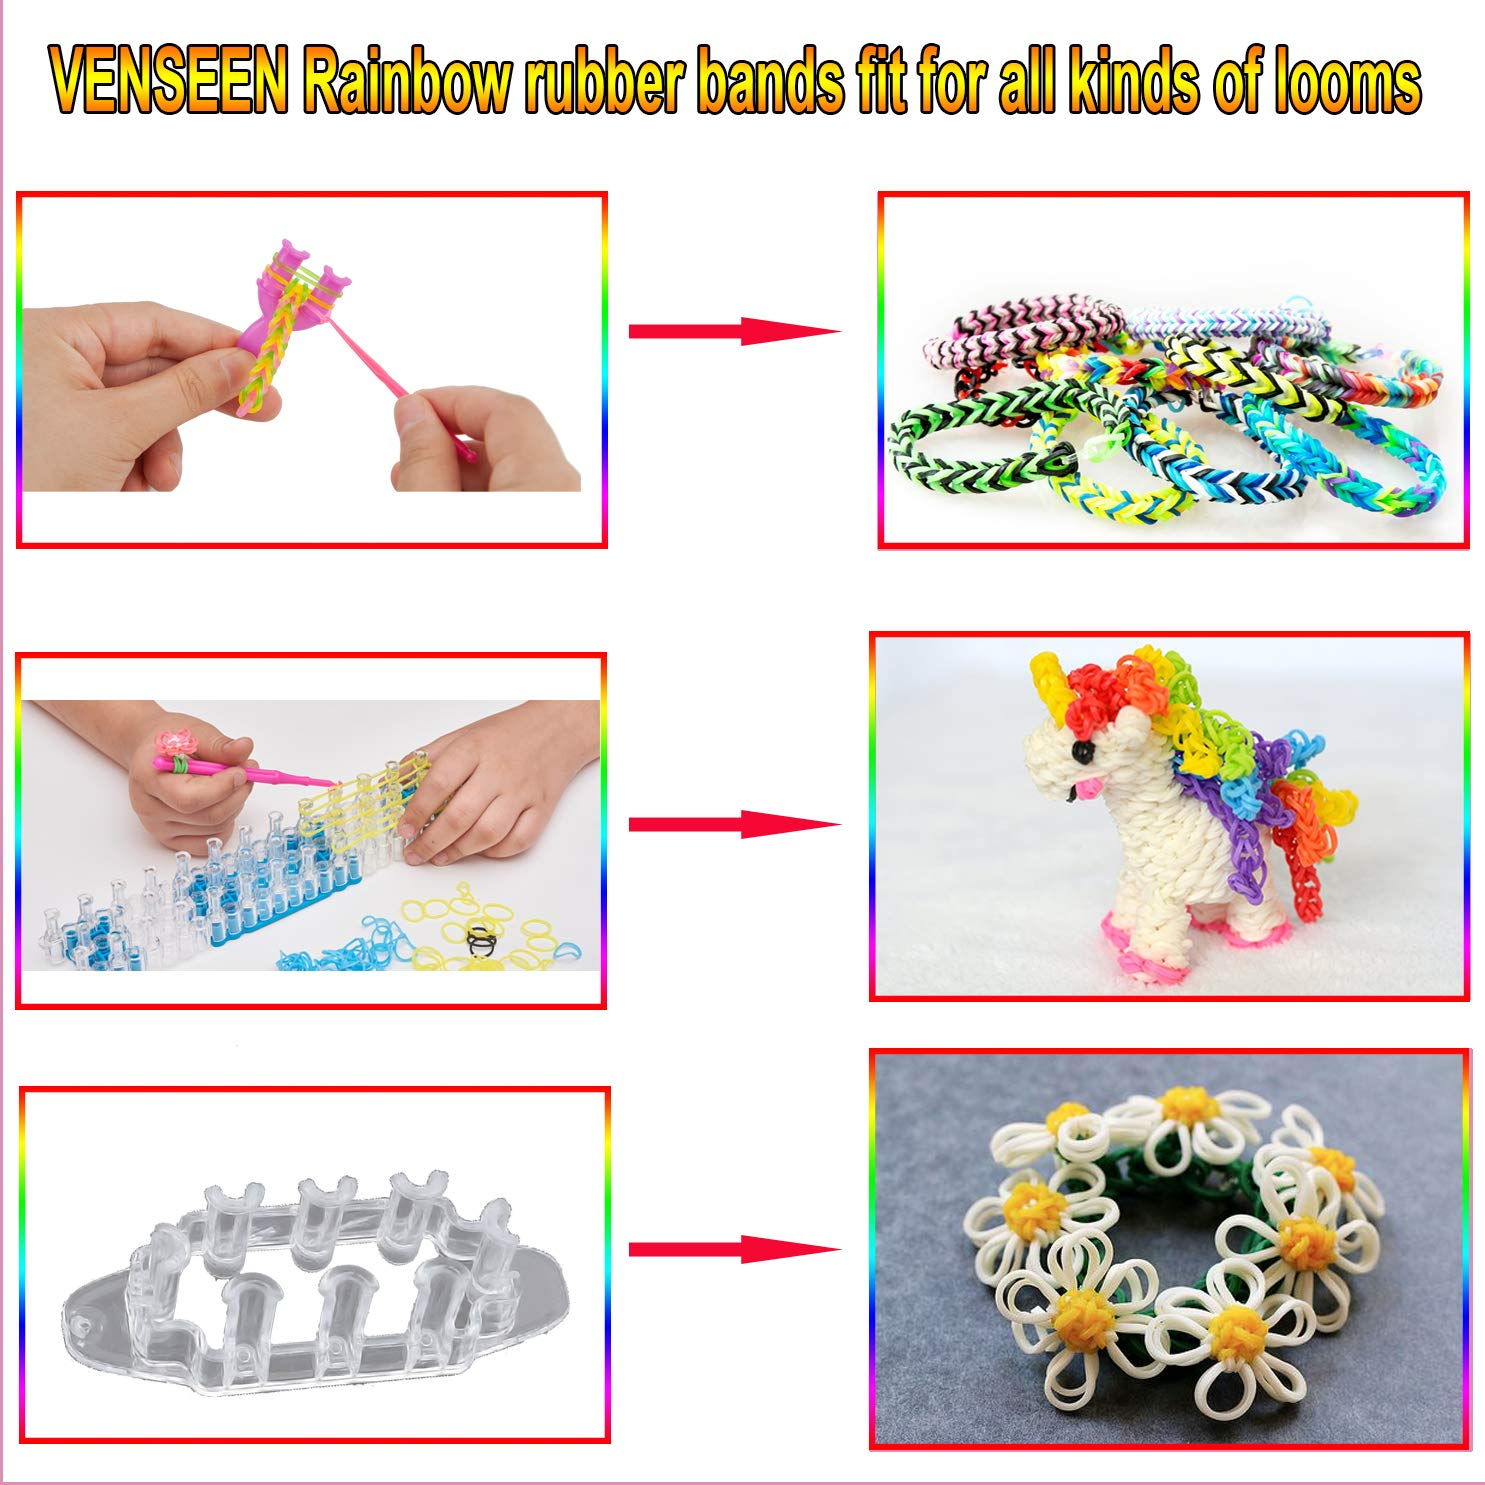 VENSEEN Rainbow Rubber Bands Bracelet Making Kit 6 Hooks 2 Y Loom 15000 Loom Bands in 30 Colors with 600 Clips